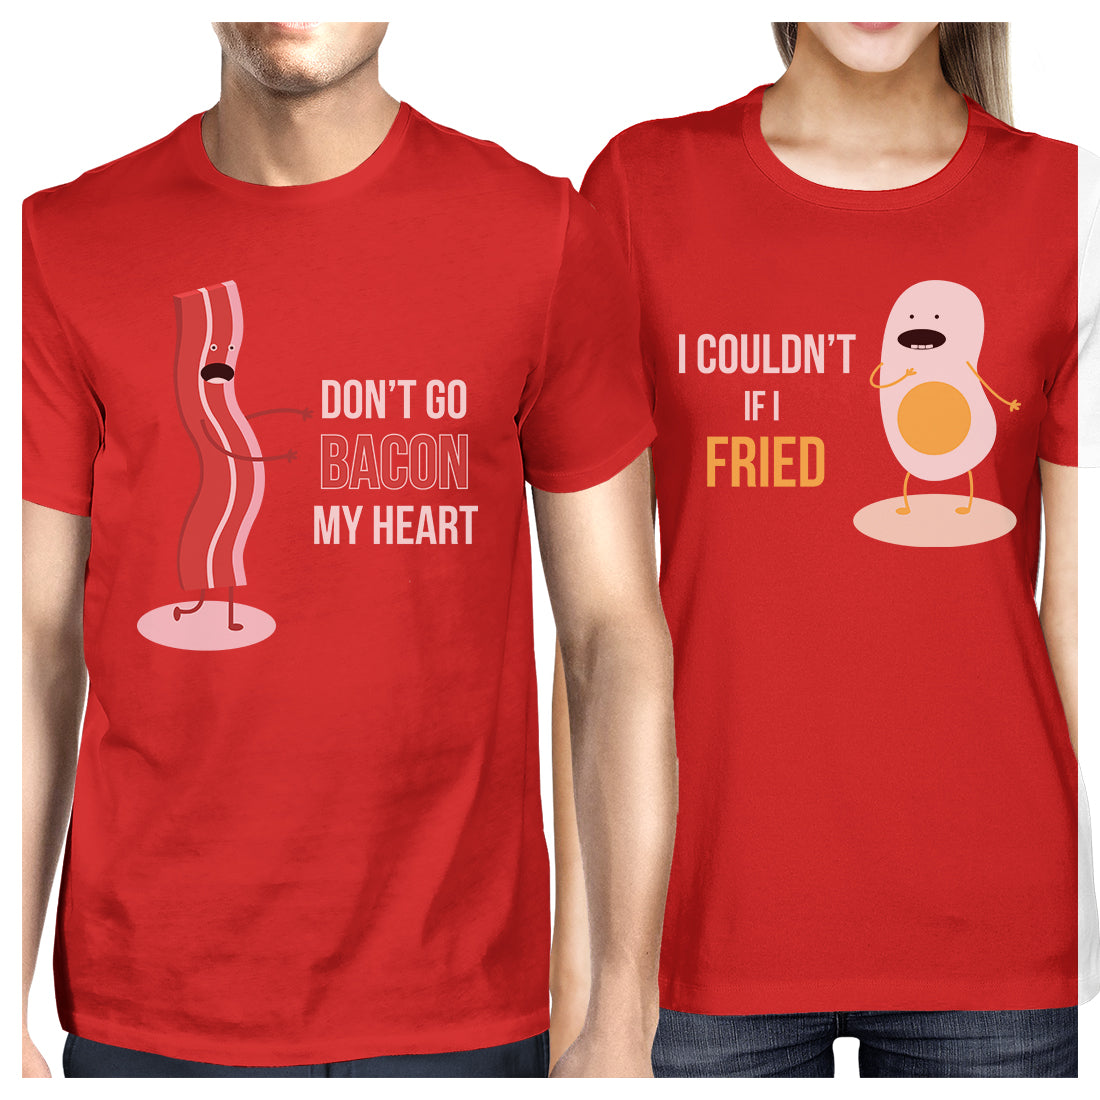 28e71f3f1 Bacon And Egg Matching Couple Gift Shirts Red Funny Graphic Tees ...